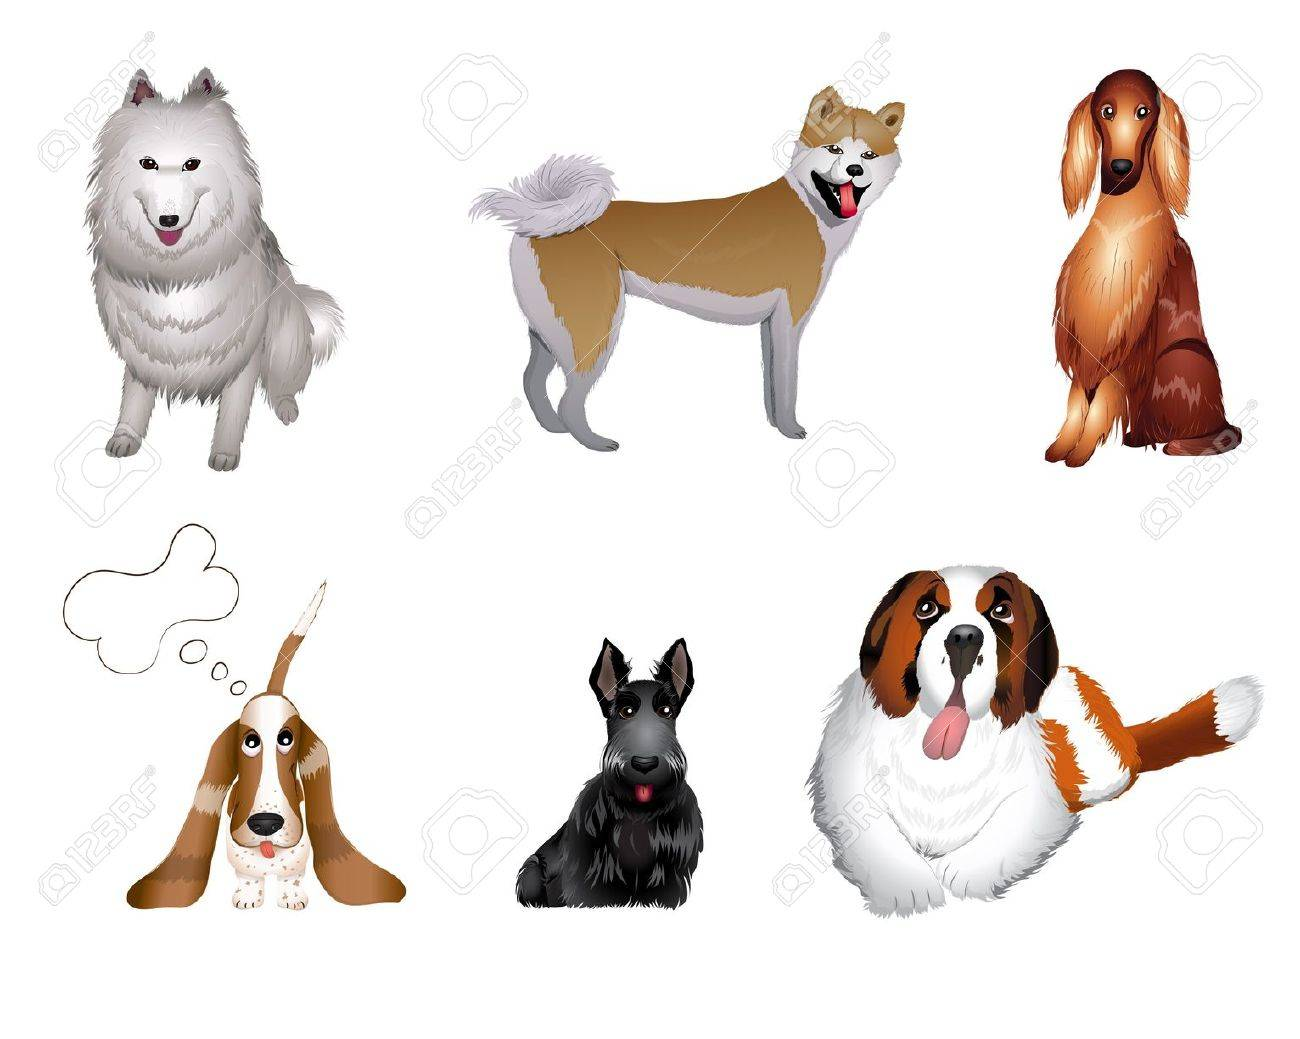 set breeds of dog vector illustrations eps 10 Stock Vector - 12491183